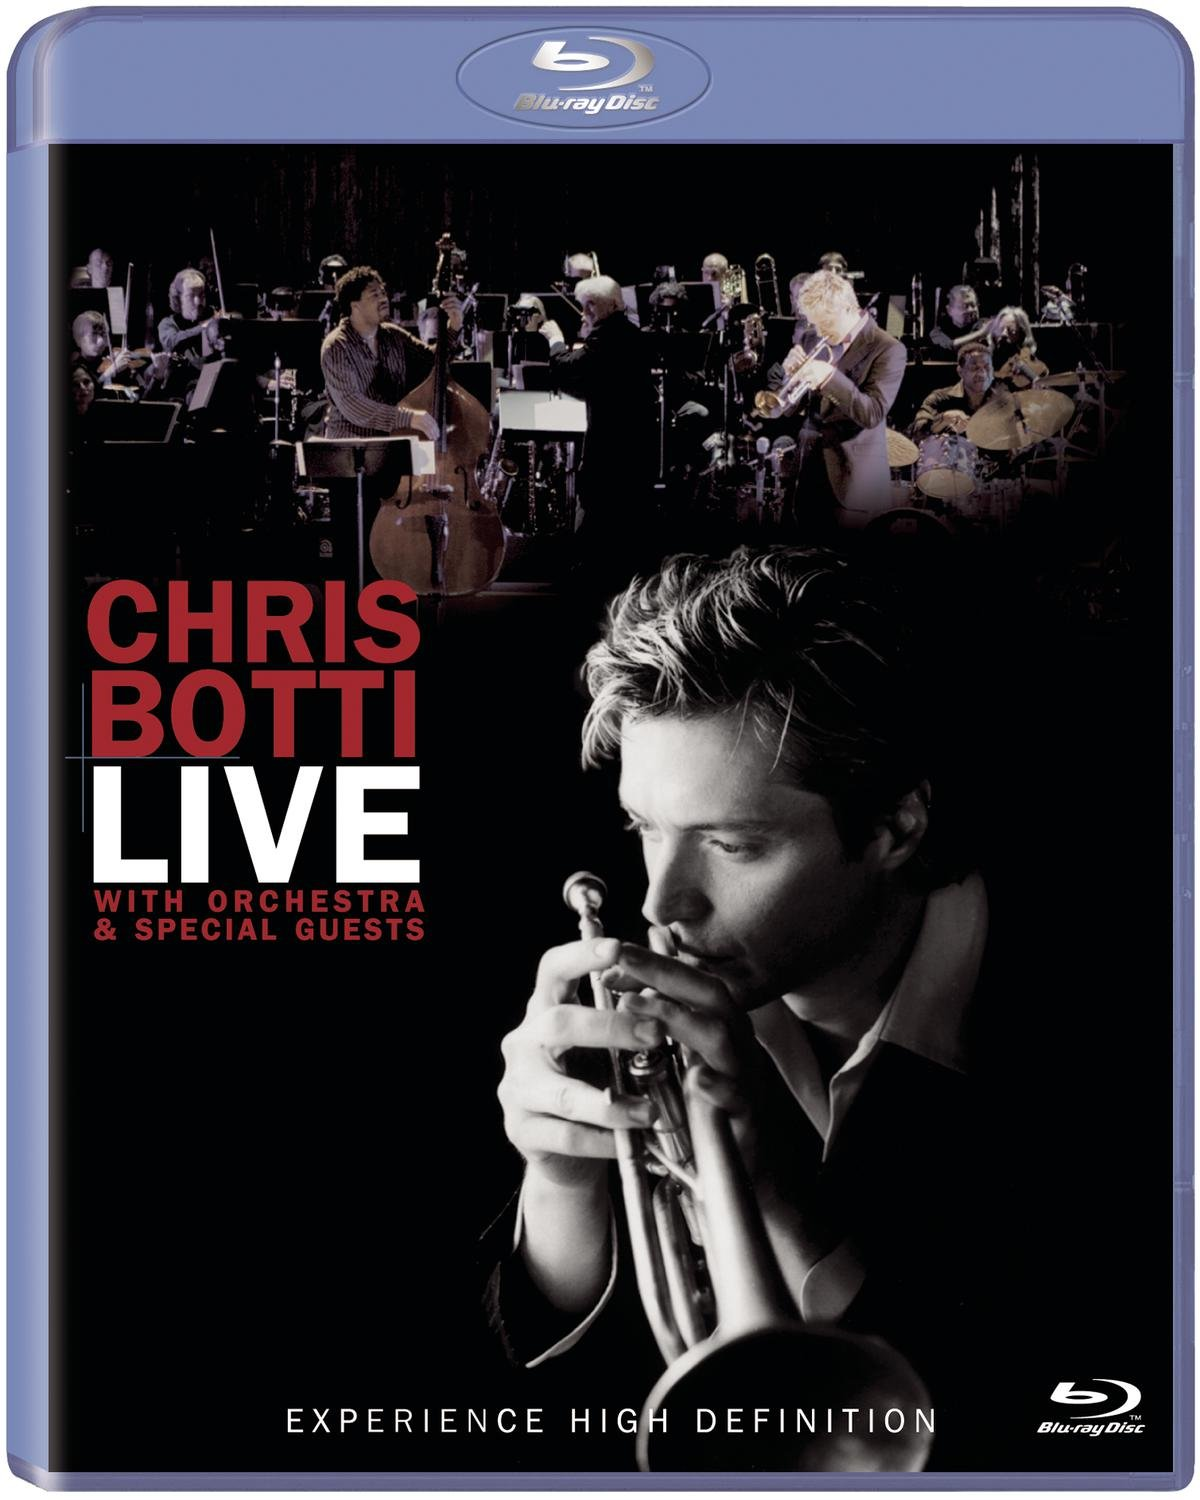 Chris Botti: Live with Orchestra and Special Guests [Blu-ray] by Sony